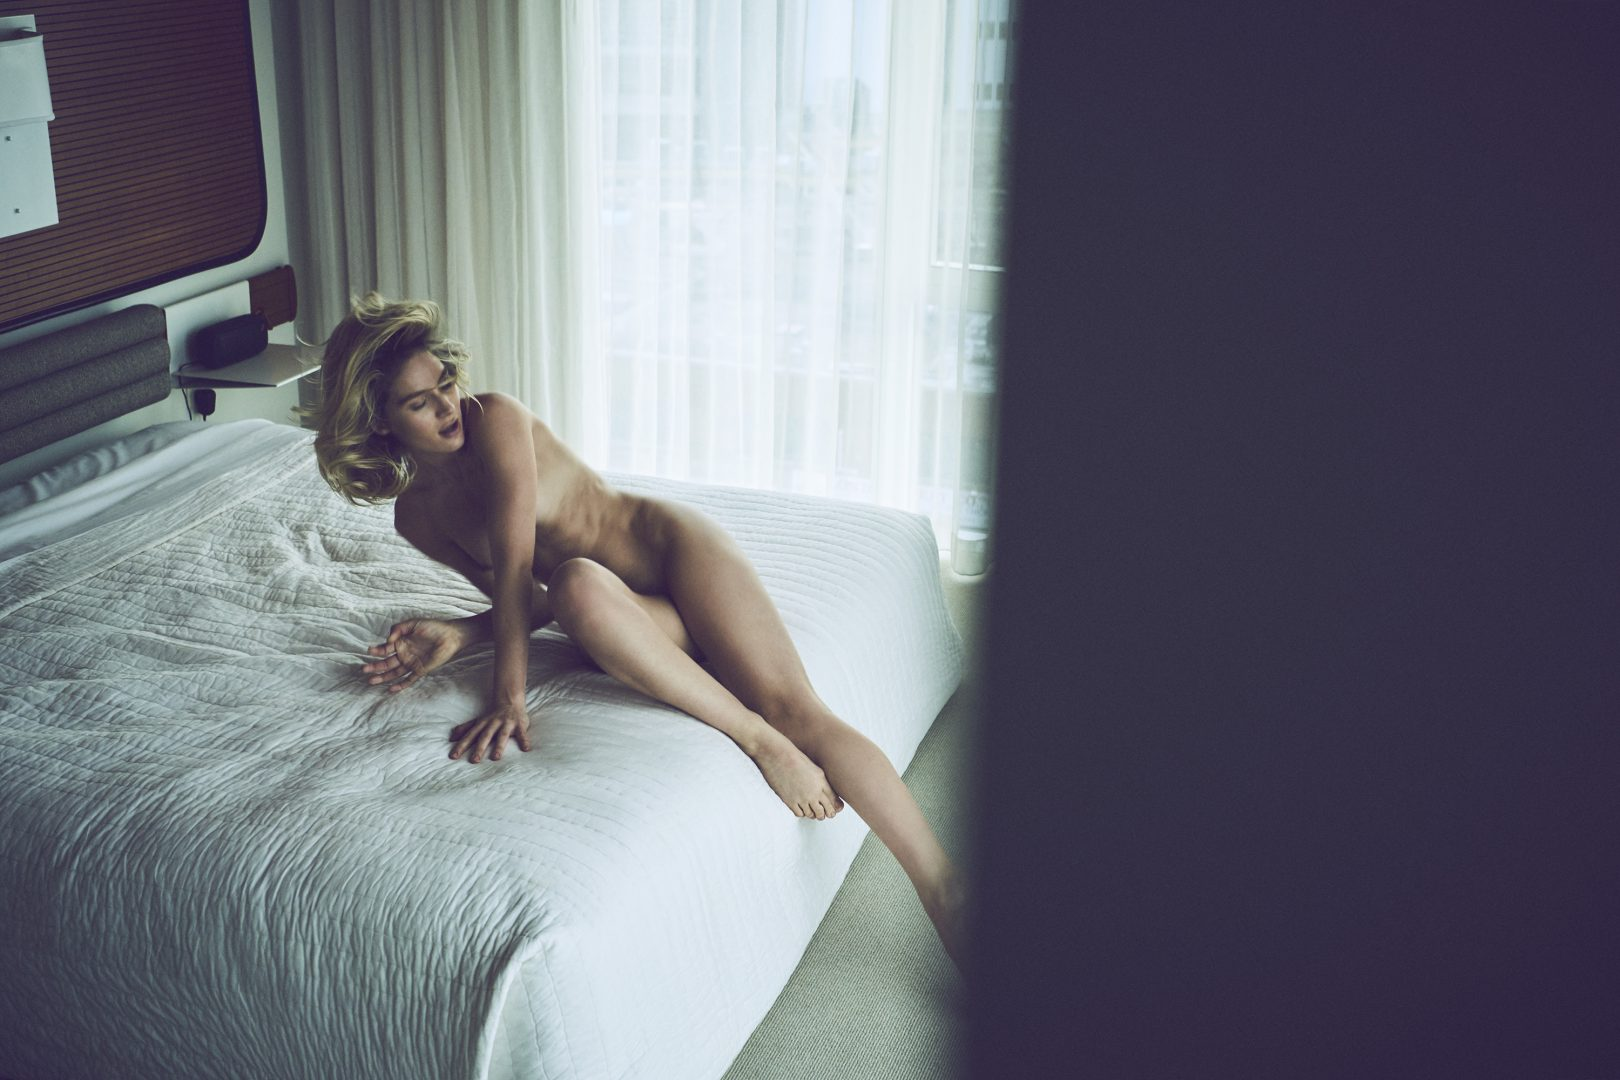 Naked girl jumping on bed in hotel room by Stefan Rappo